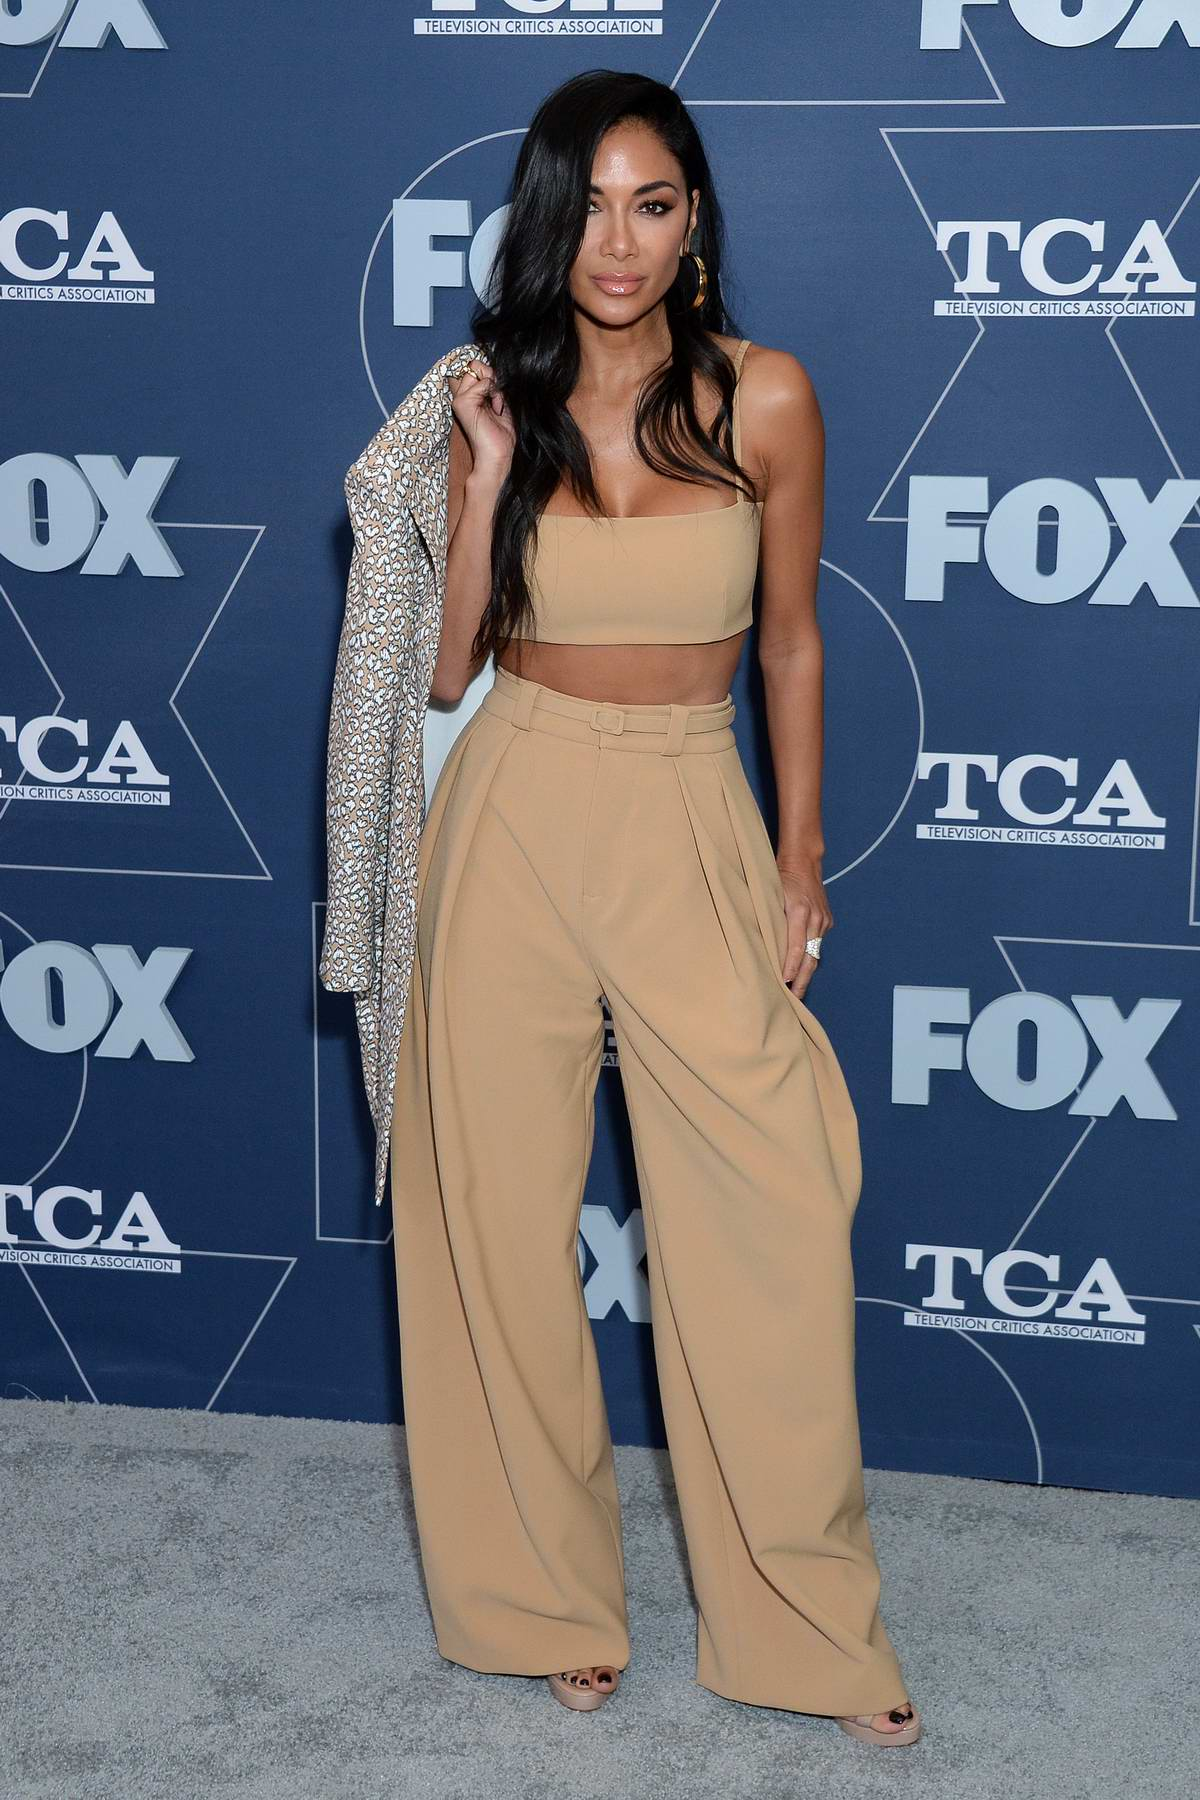 Nicole Scherzinger attends the Fox TCA Winter 2020 Press Tour and All-Star Party at The Langham in Pasadena, California